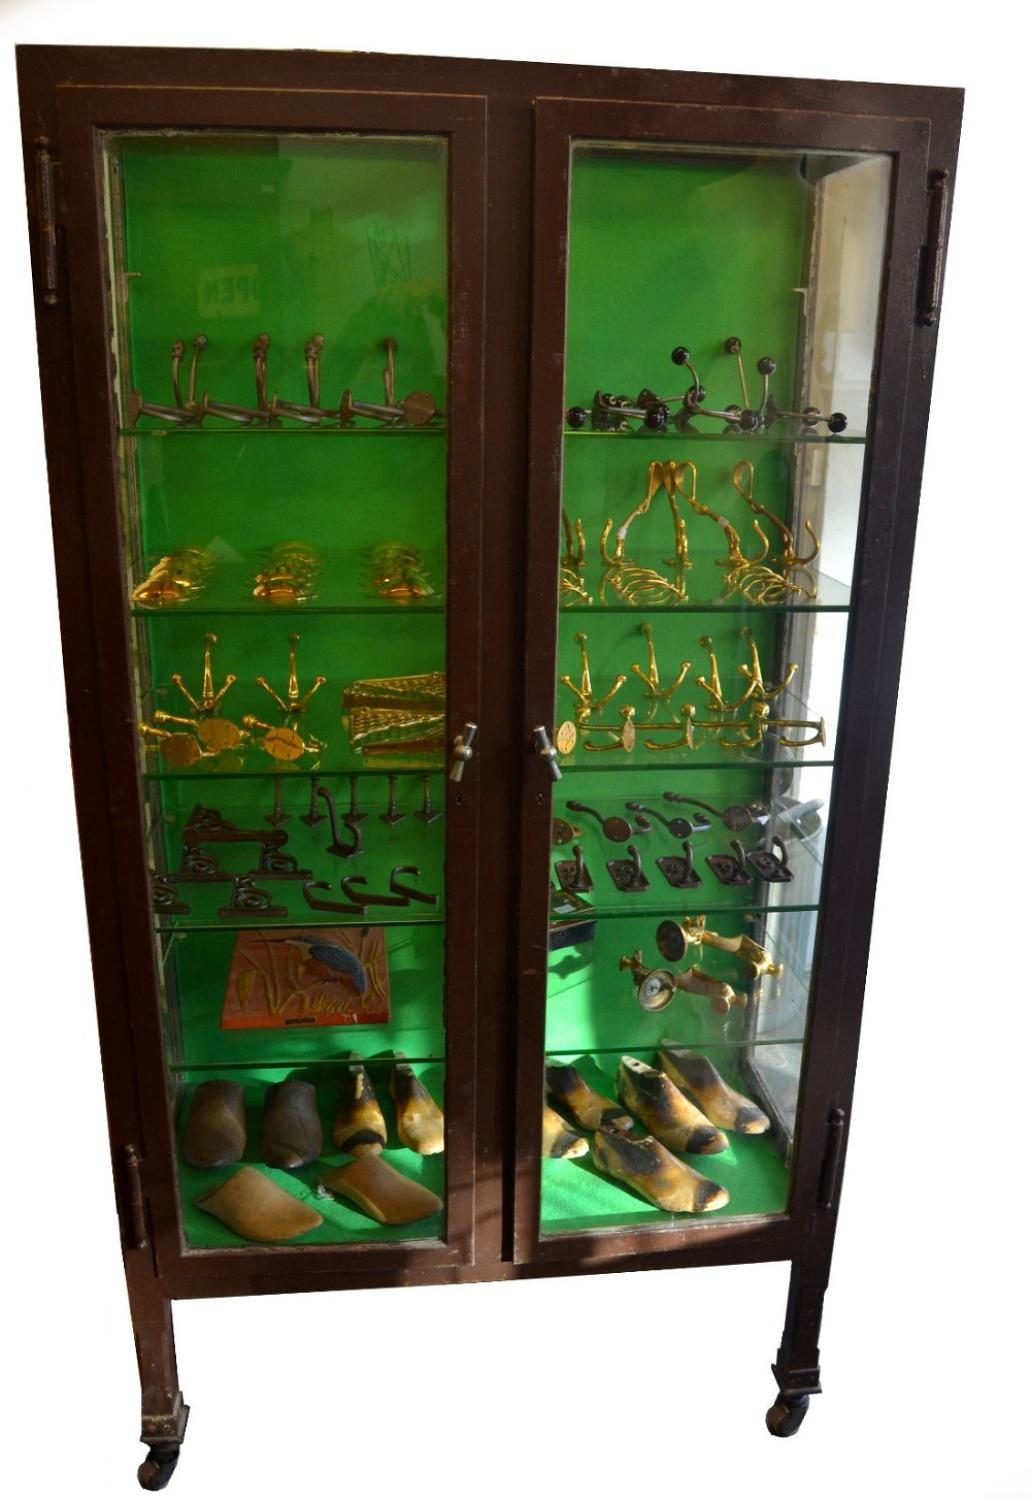 1920s Vintage Pharmacy Cabinet